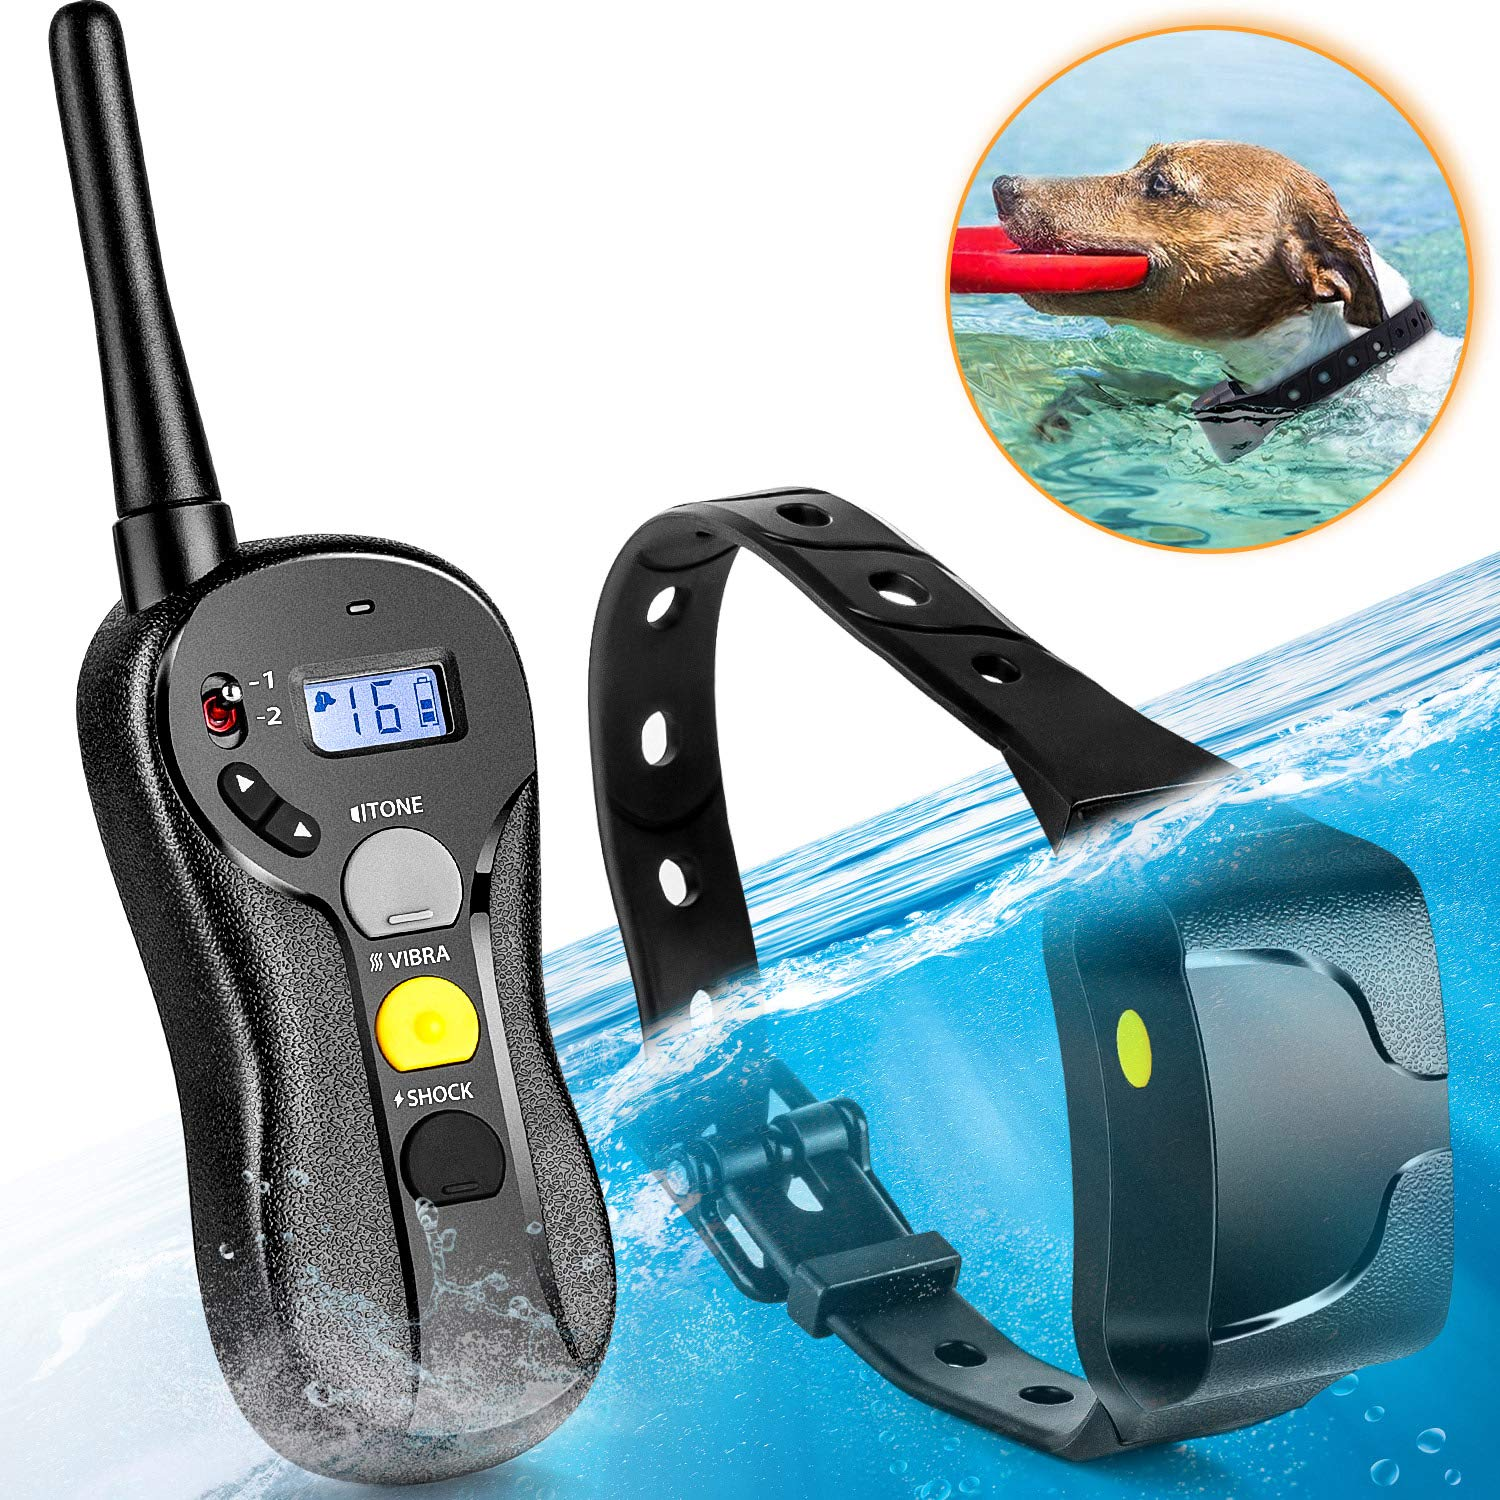 Shock Collar for Dogs - IPX7 Waterproof Dog Shock Collar with IPX5 Water Resistant Remote 3000 Feet Range No Harm Dog Training Collar Fast Training Effect for Small Medium Large Dogs by PATPET-US